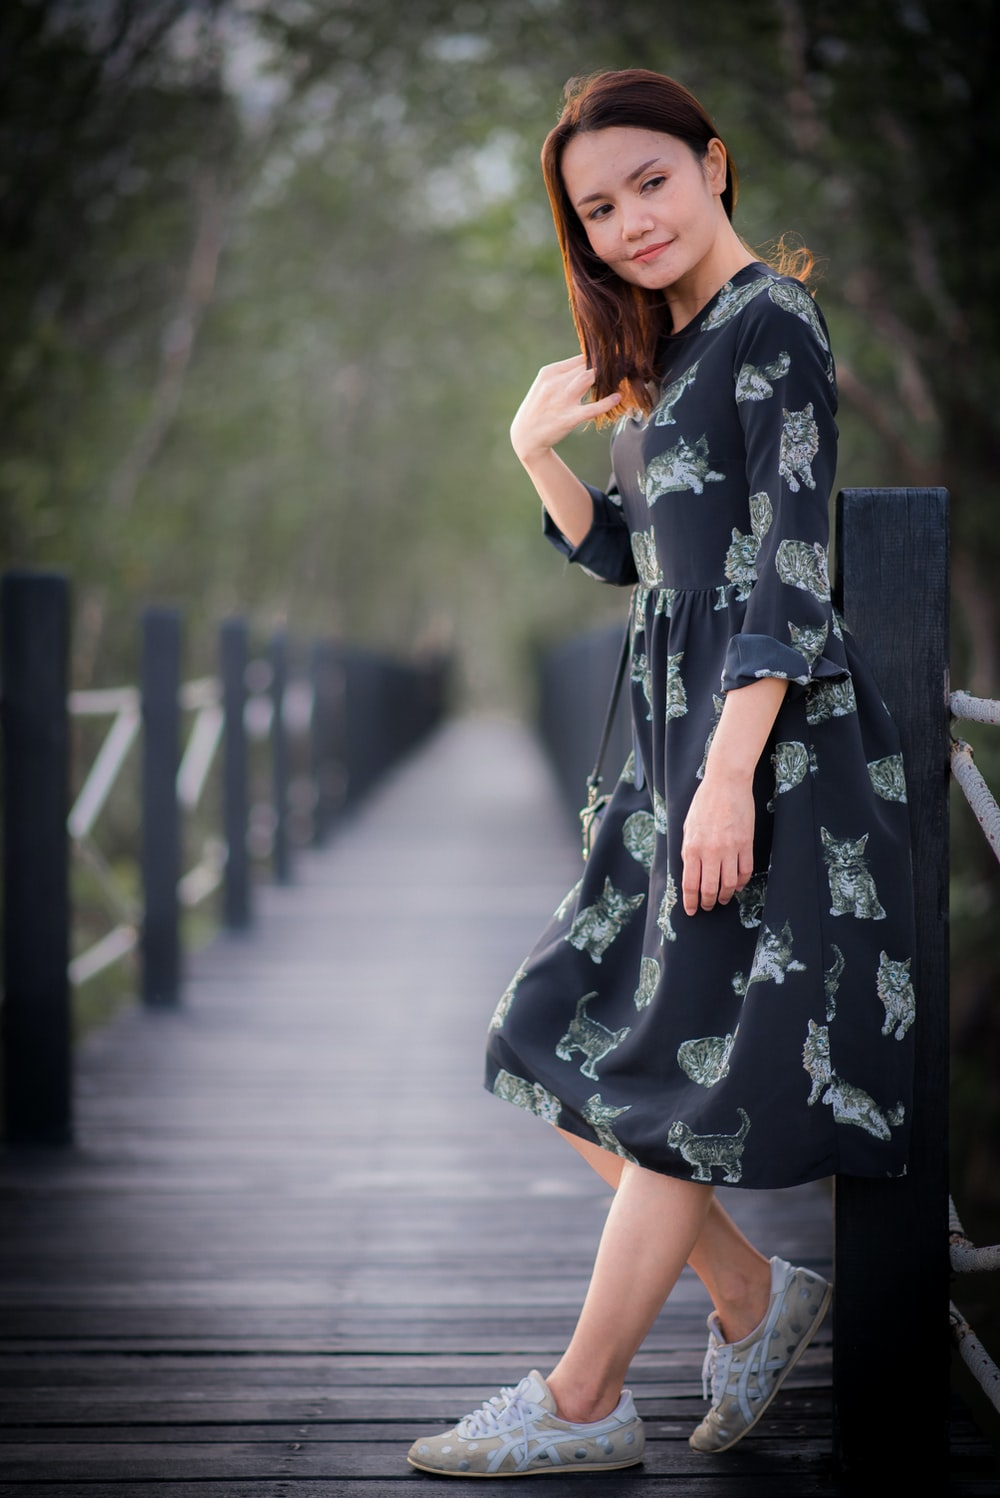 woman in black and white floral dress standing on gray concrete pathway during daytime